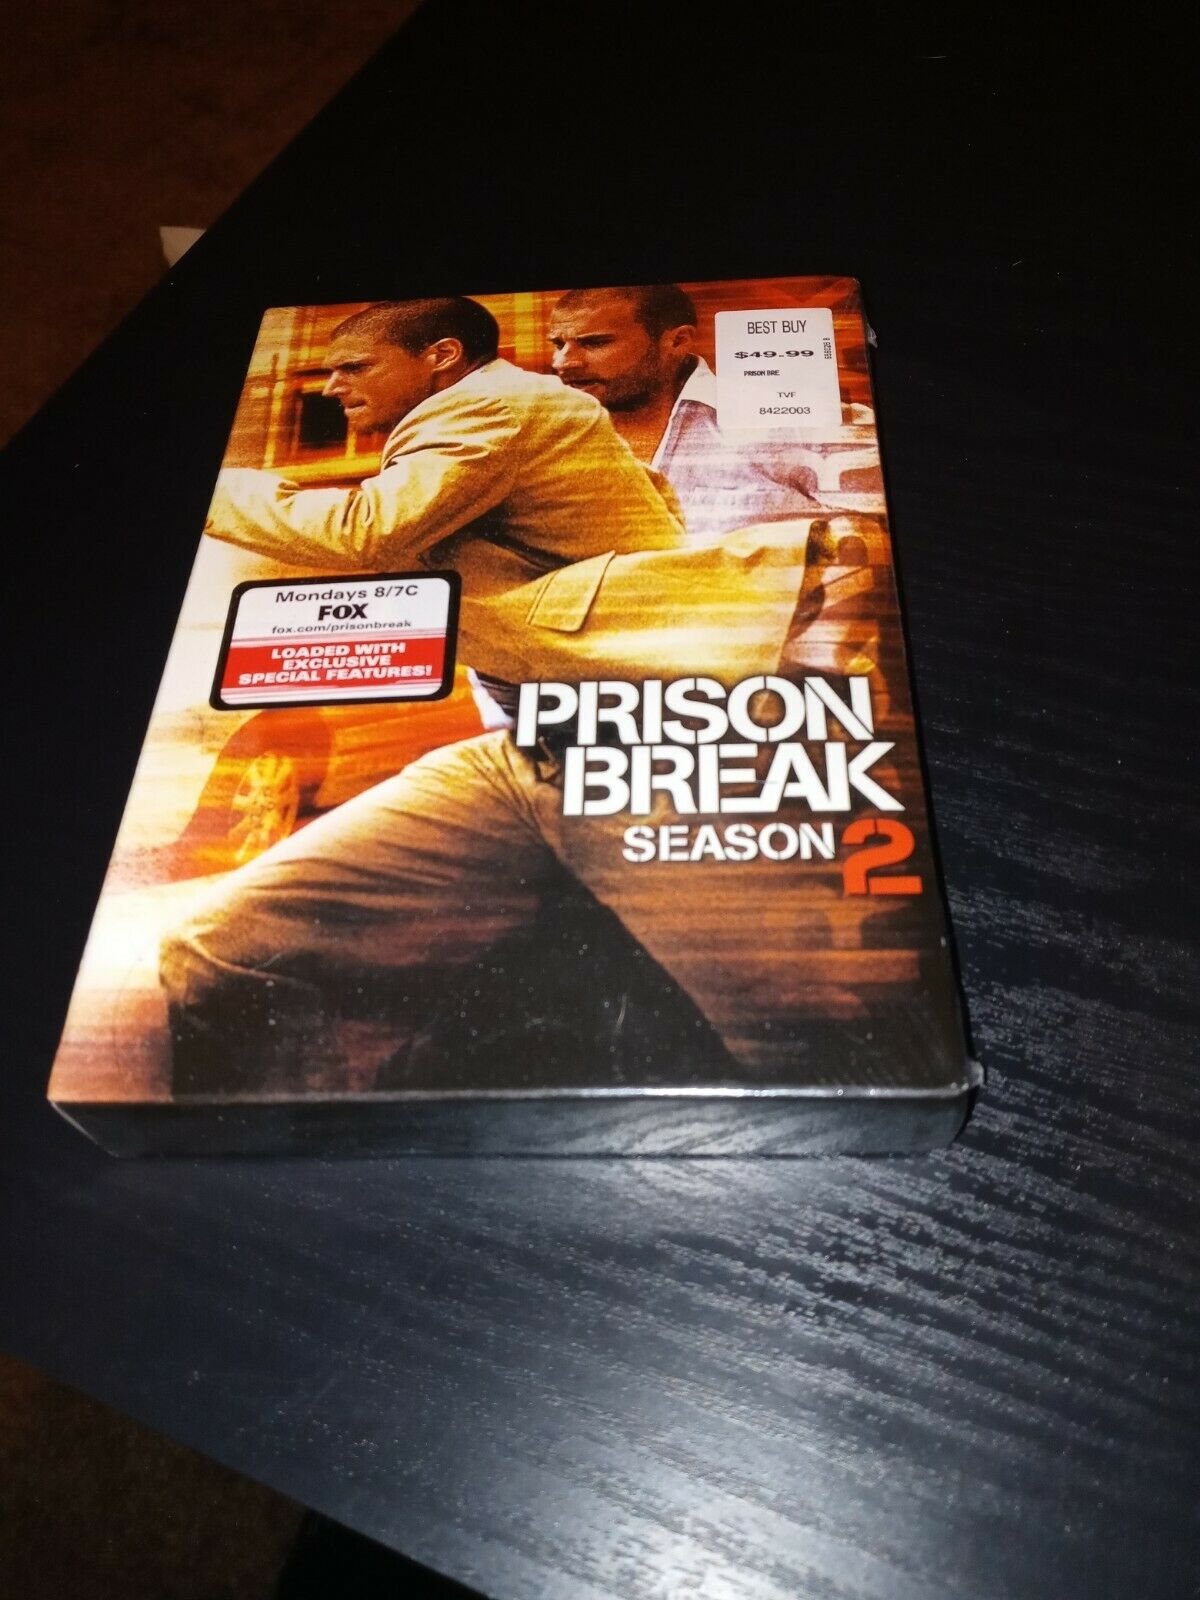 Prison Break Season 2 Dvd 2007 6 Disc Set For Sale Online Ebay